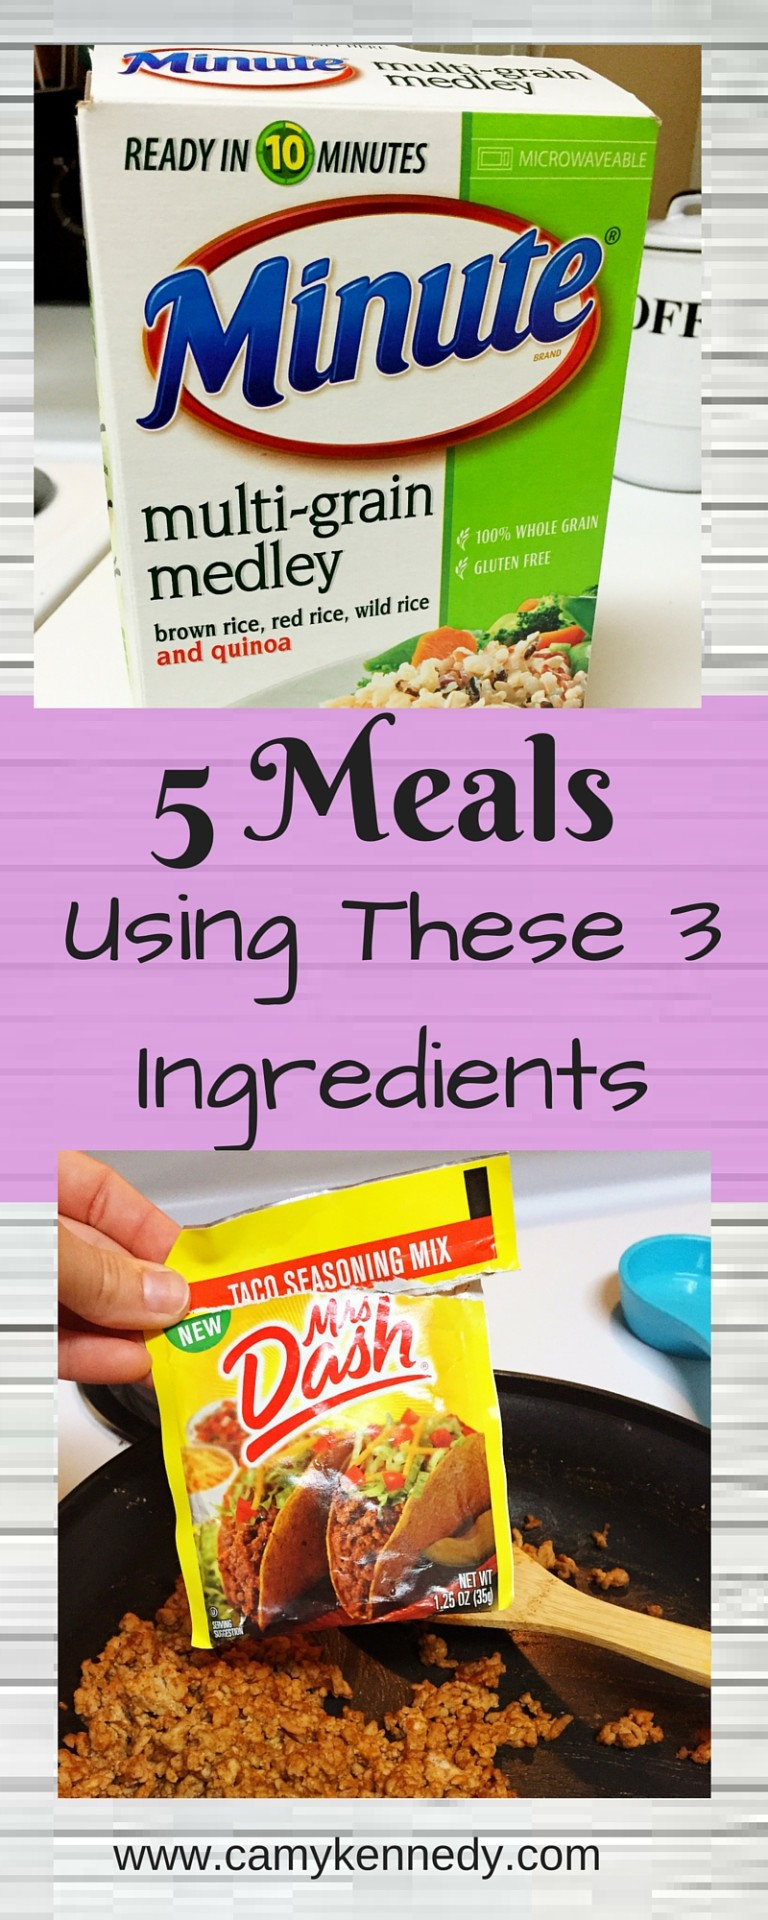 5 Meals Using these 2 ingredients